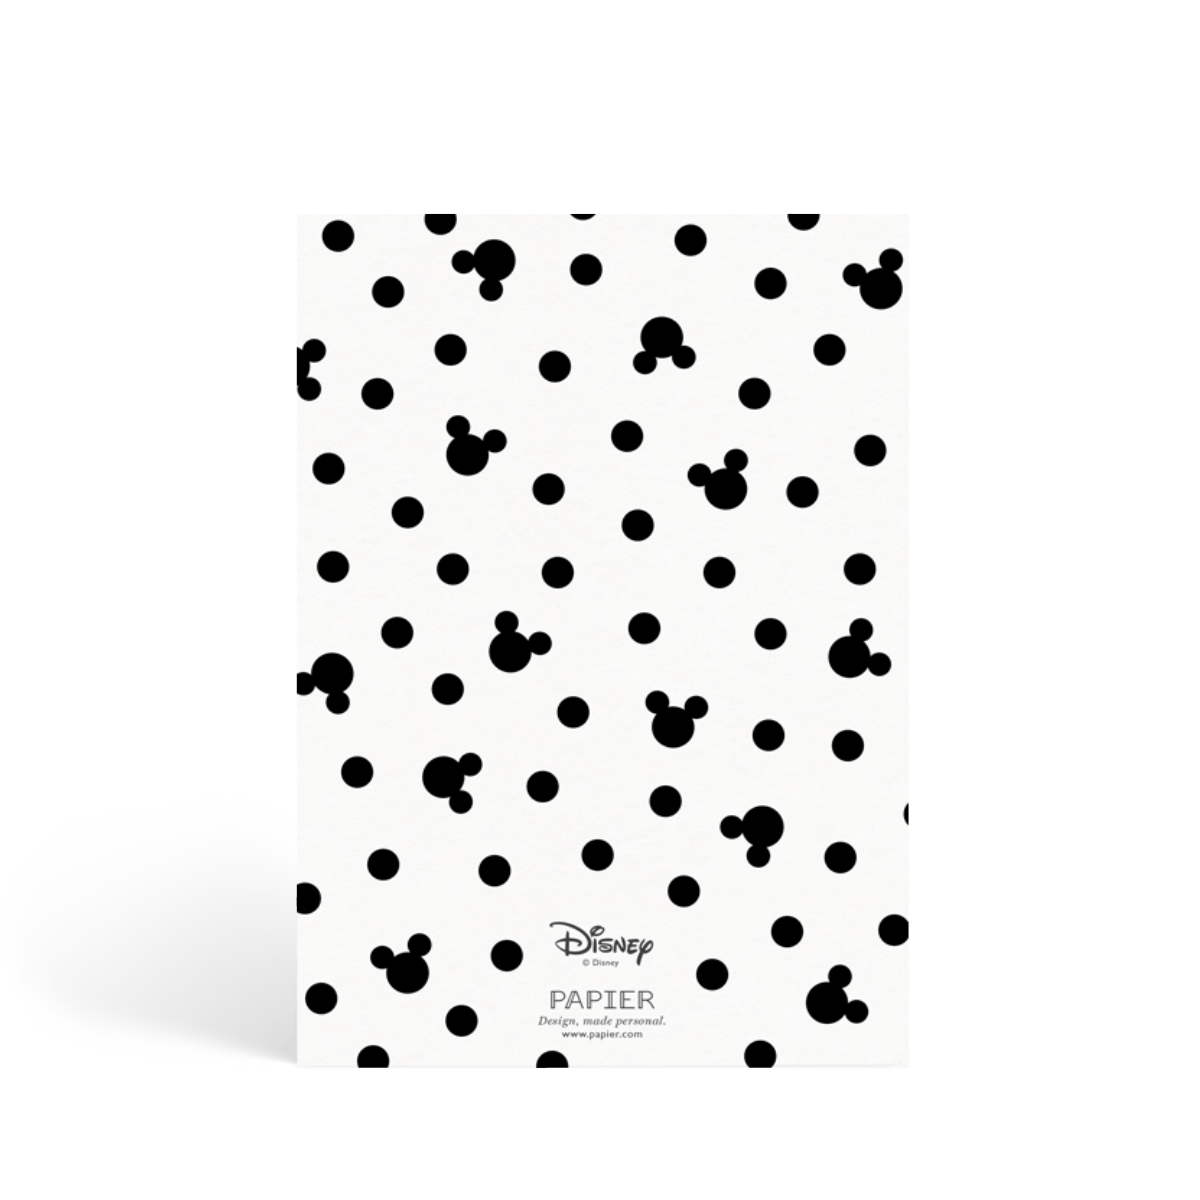 Https%3a%2f%2fwww.papier.com%2fproduct image%2f57327%2f5%2fpolka dot mickey mouse 13771 back 1542370615.png?ixlib=rb 1.1